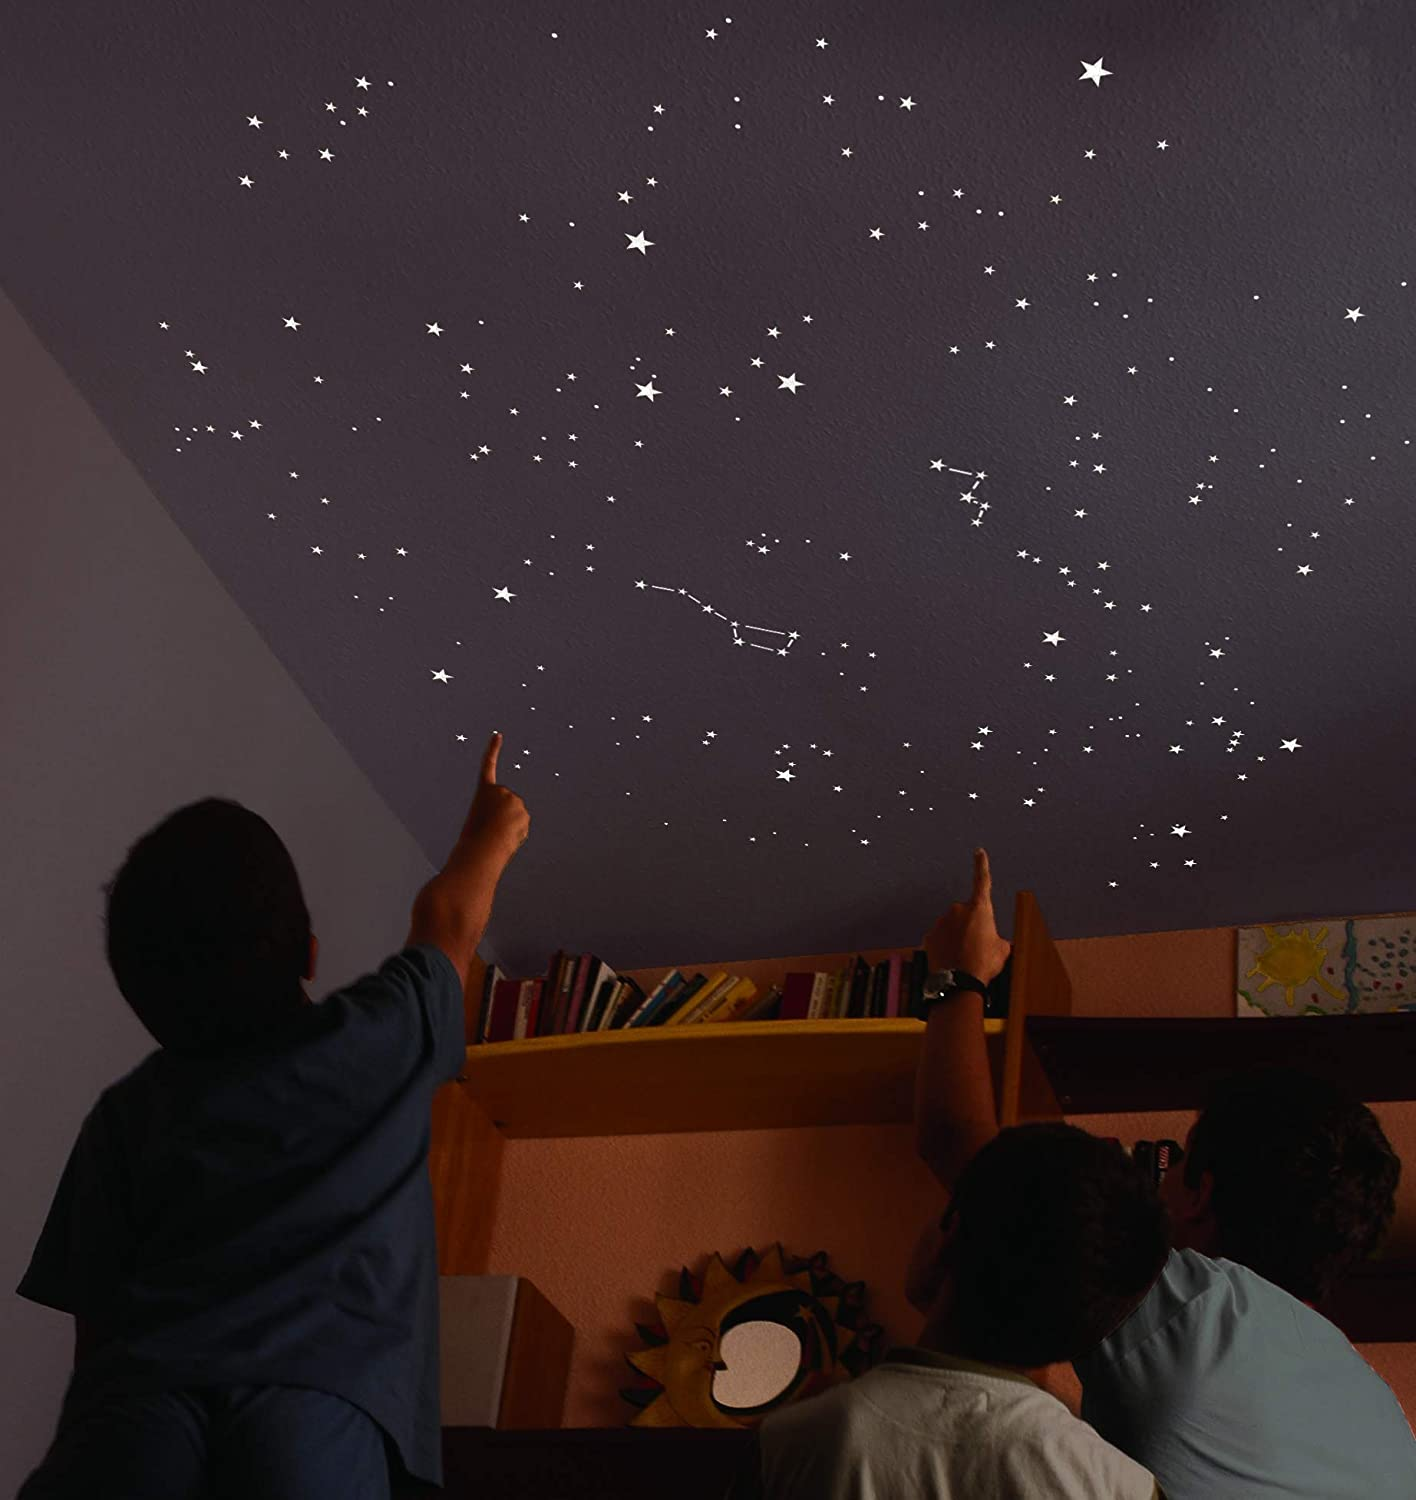 Kit of 270 fluorescent STARS + 23 sqr ft STENCIL. EXACT REPRODUCTION OF THE  NIGHT SKY + MAP with indications. Astronomy on ceiling or wall. ...